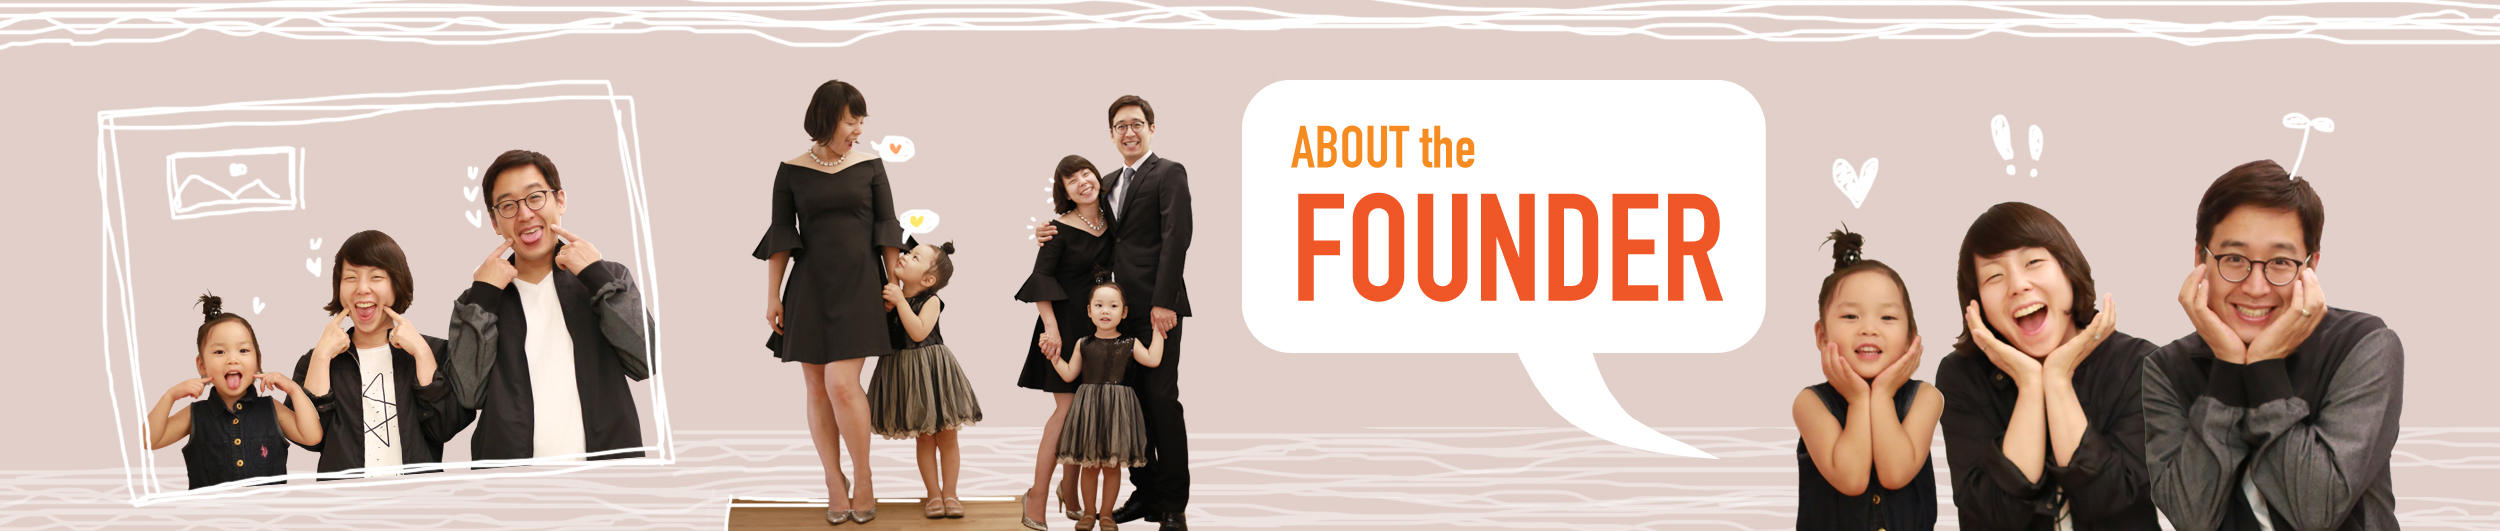 Link n Learn - About The Founder - Banner